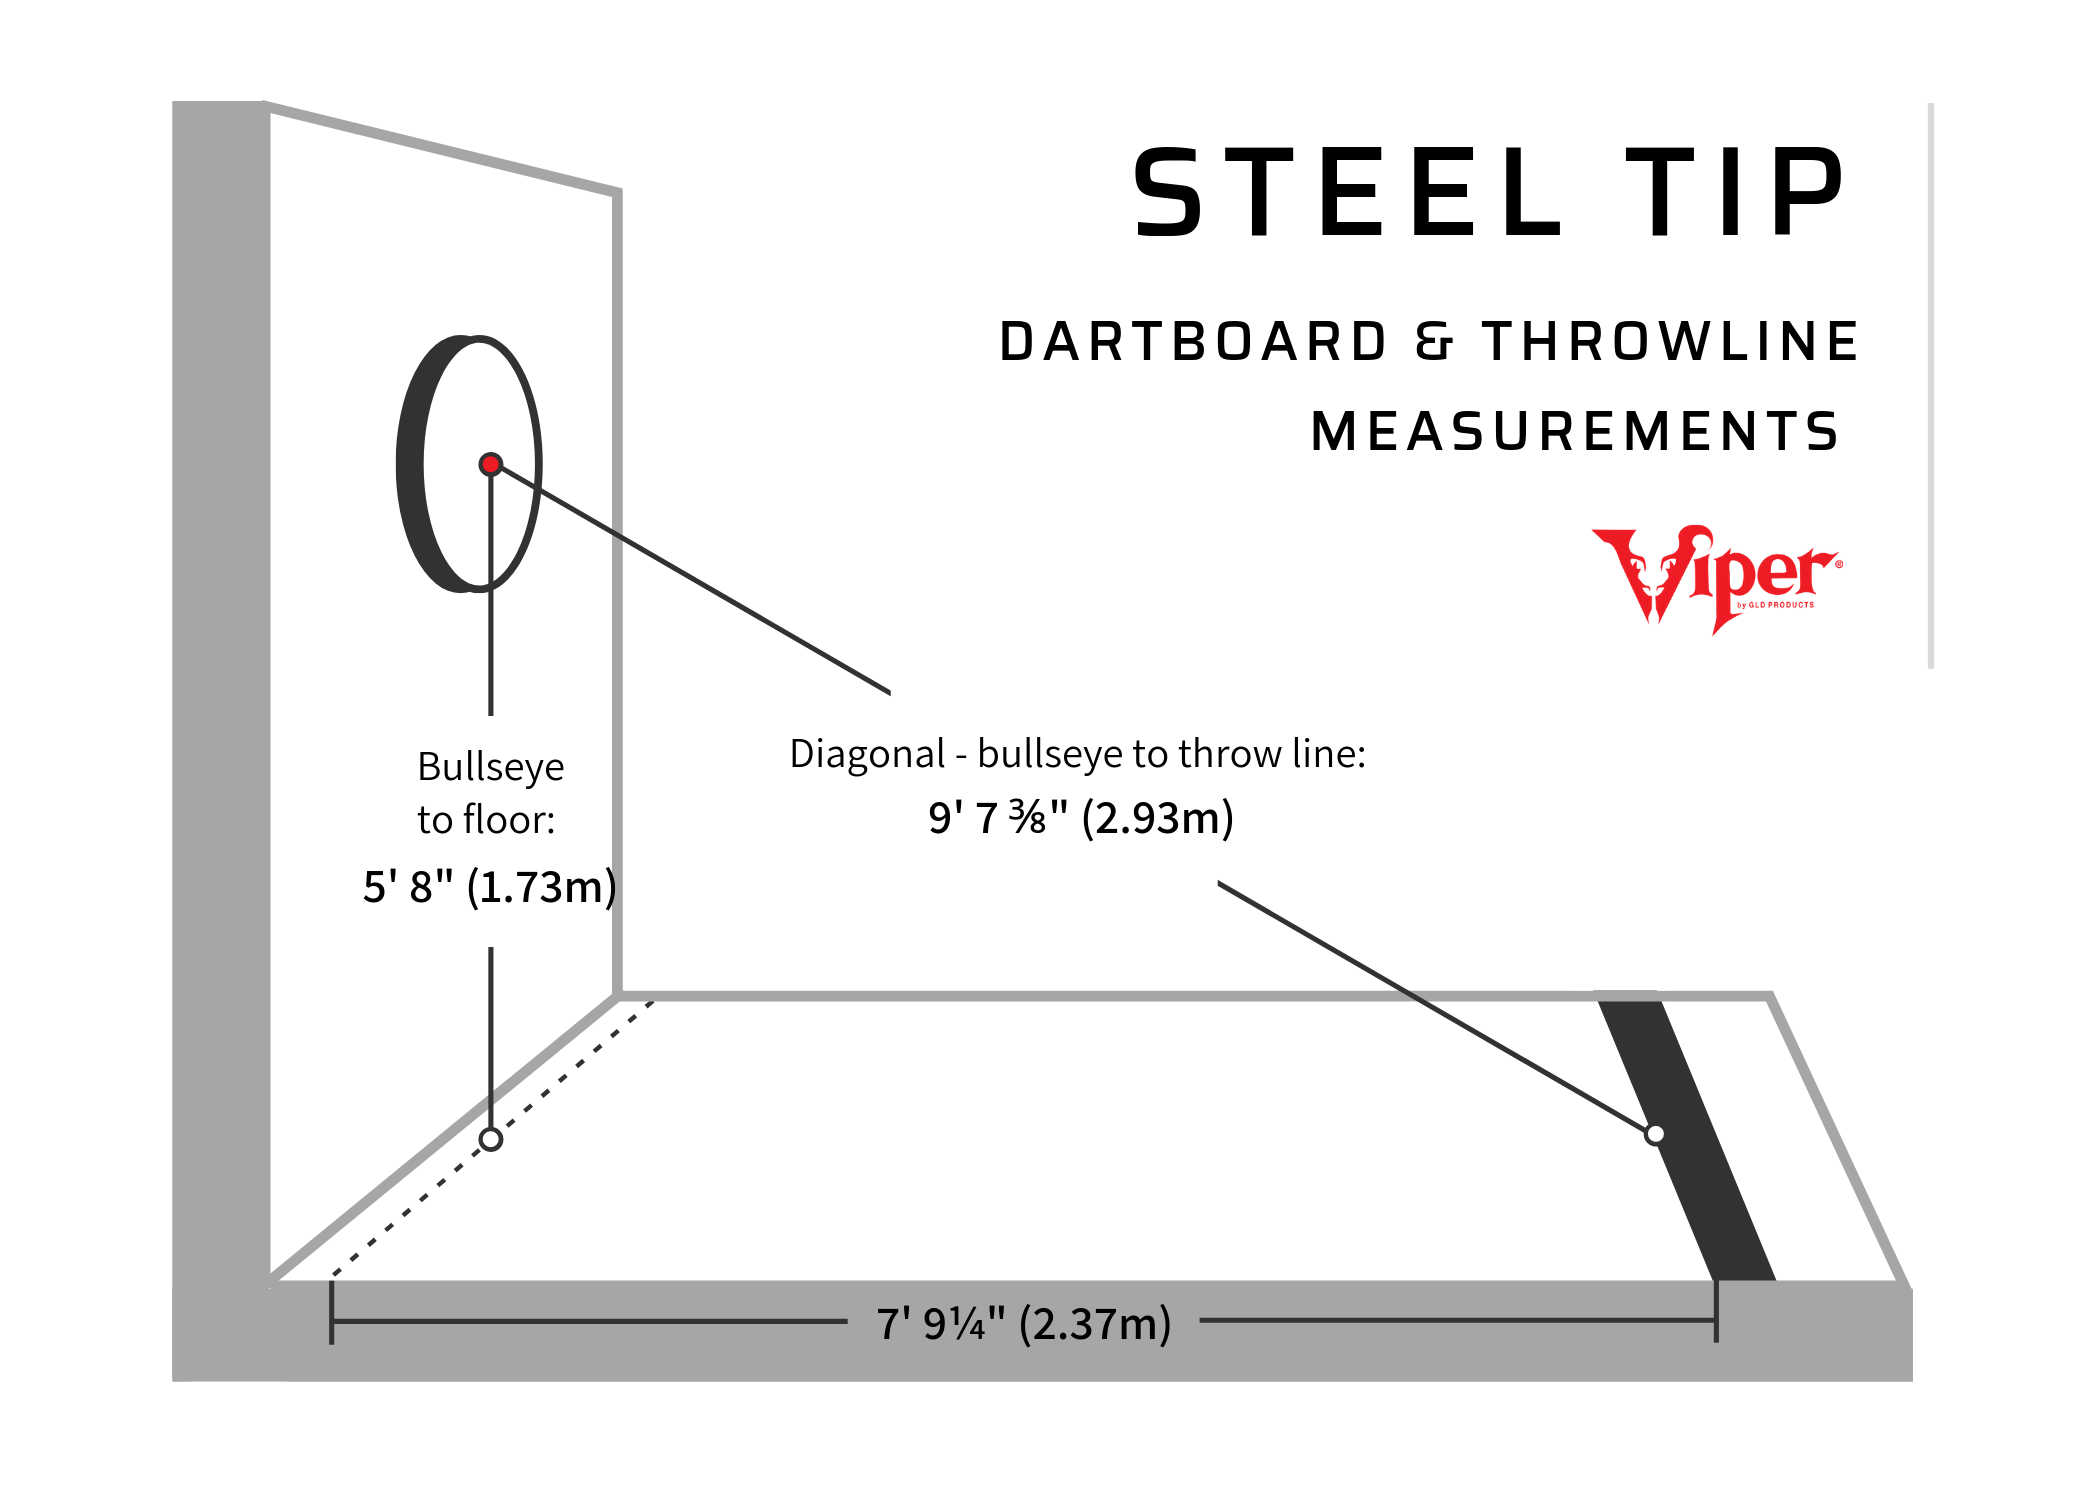 Steel Tip Dartboard and Throwline Measurements